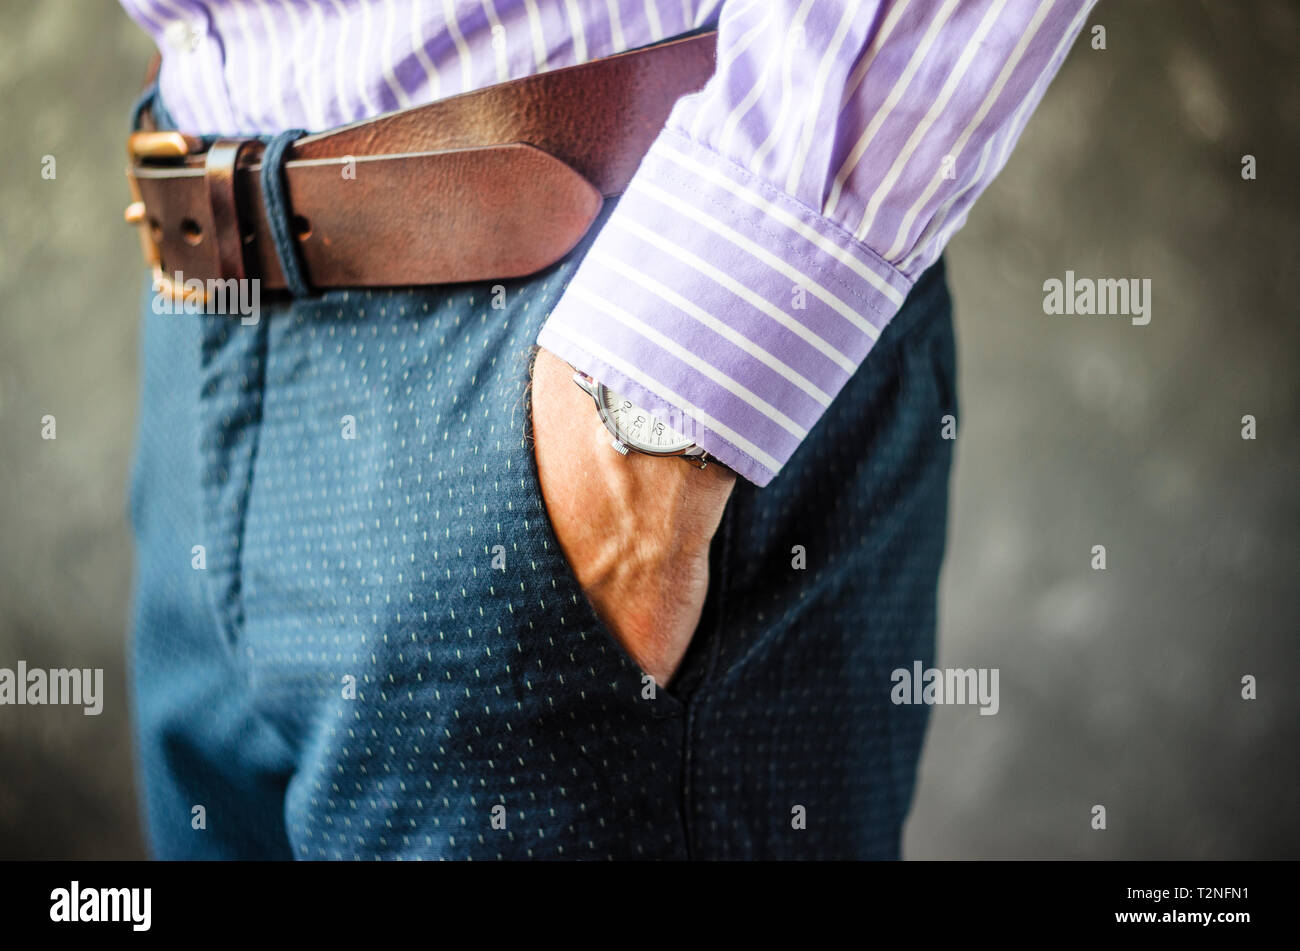 Close Up of Man Hand with Wrist Watch in the Pocket of